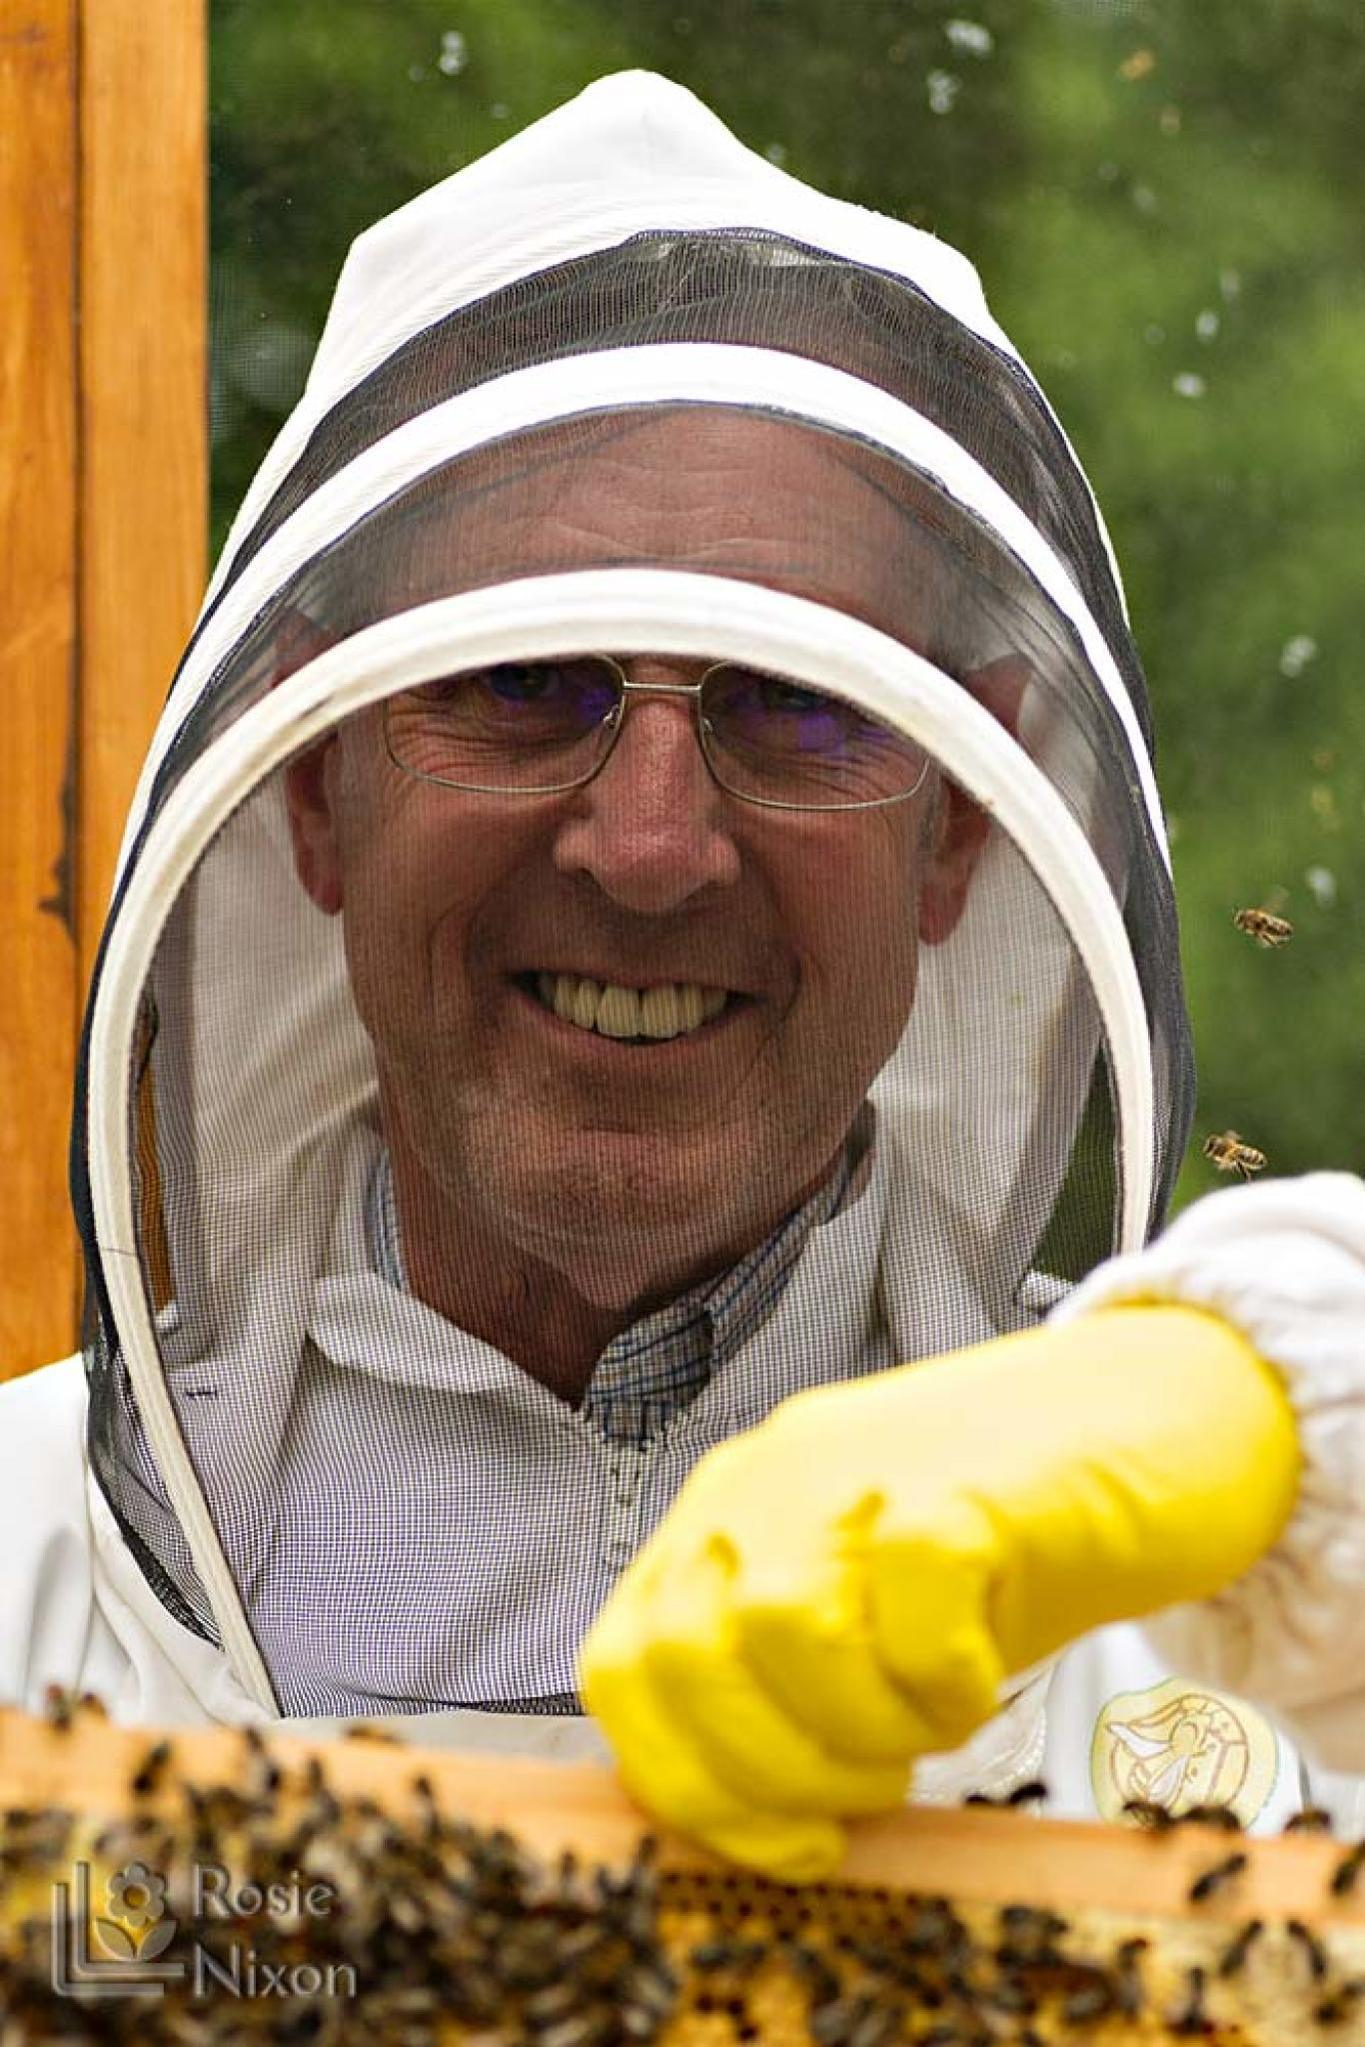 Phil from ayr beekeepers